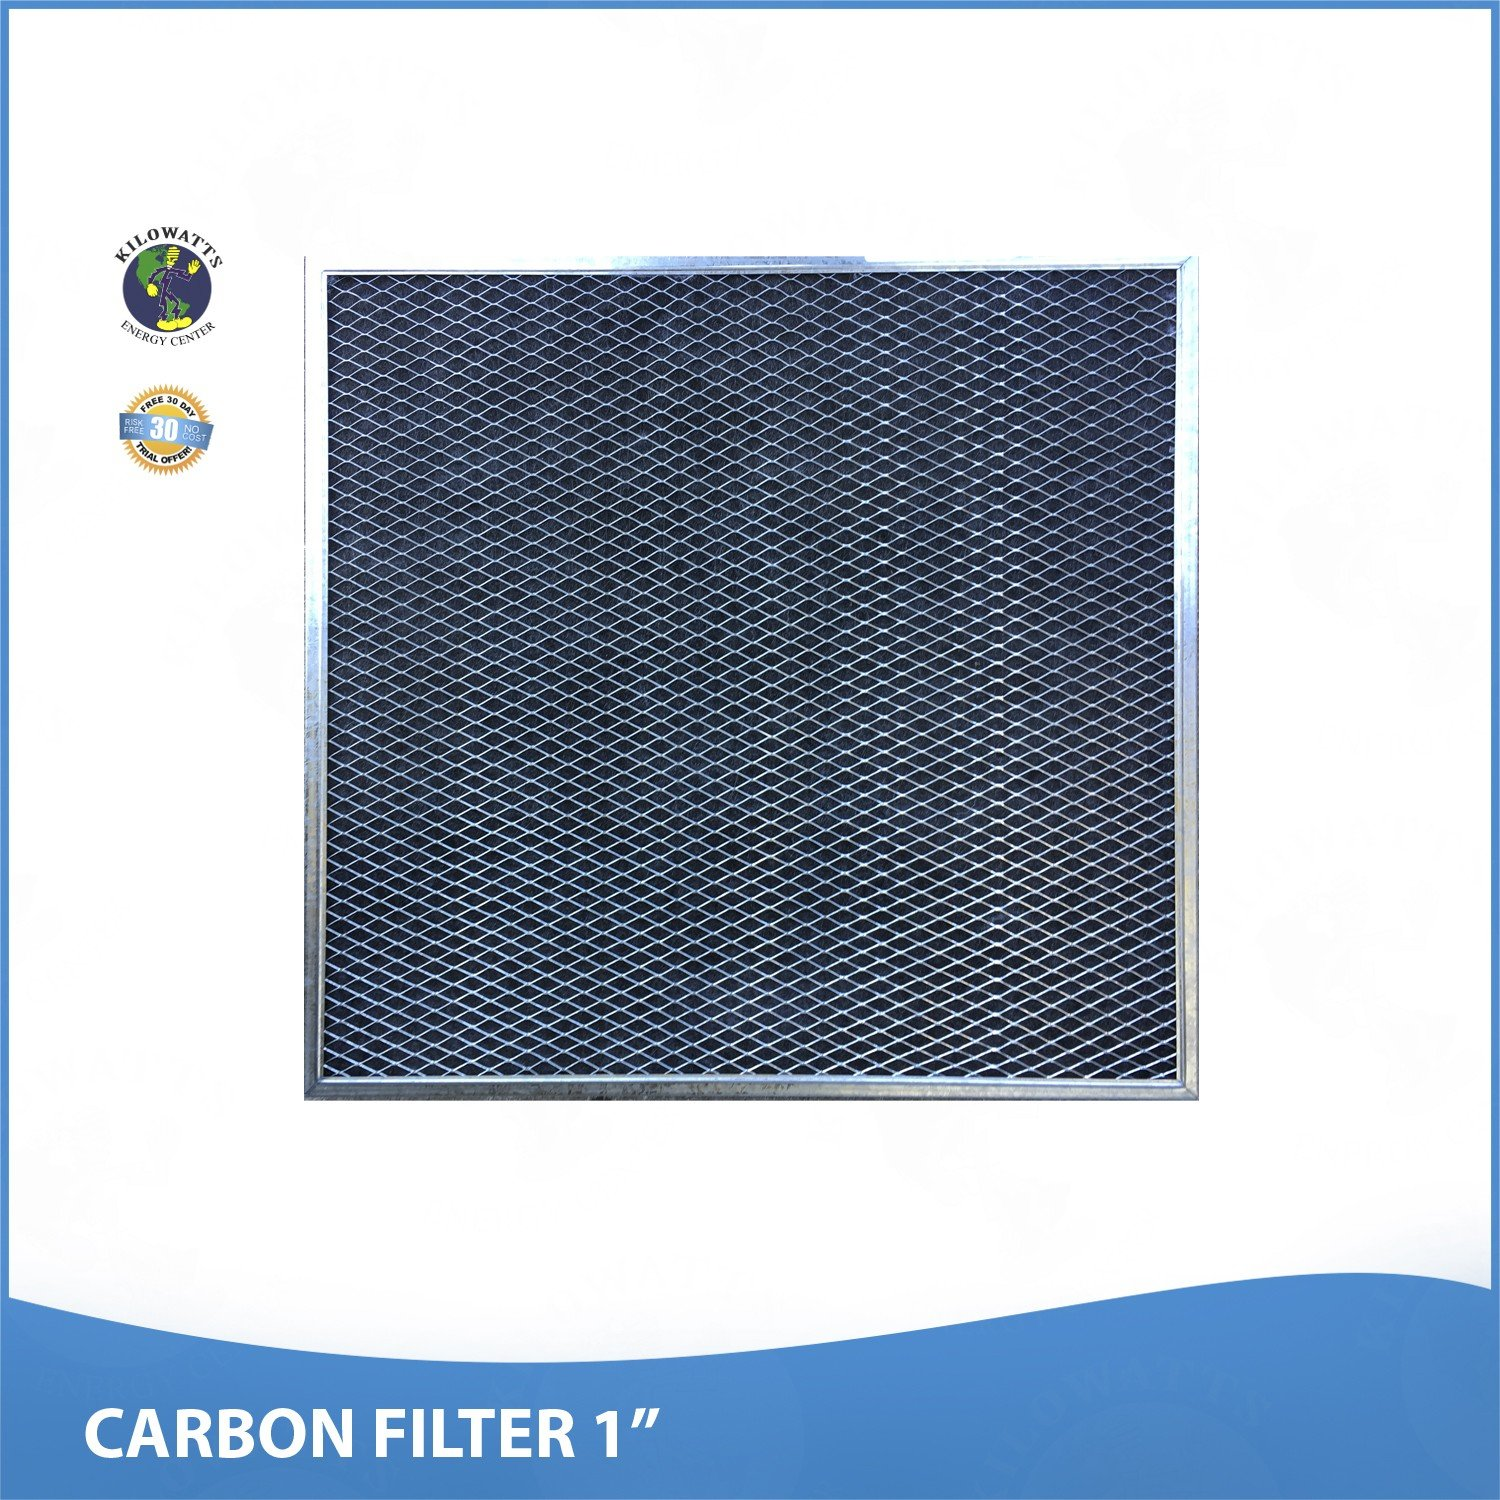 20x20x1 Activated Carbon Particles A/C Furnace Air Filters, Steel Frame